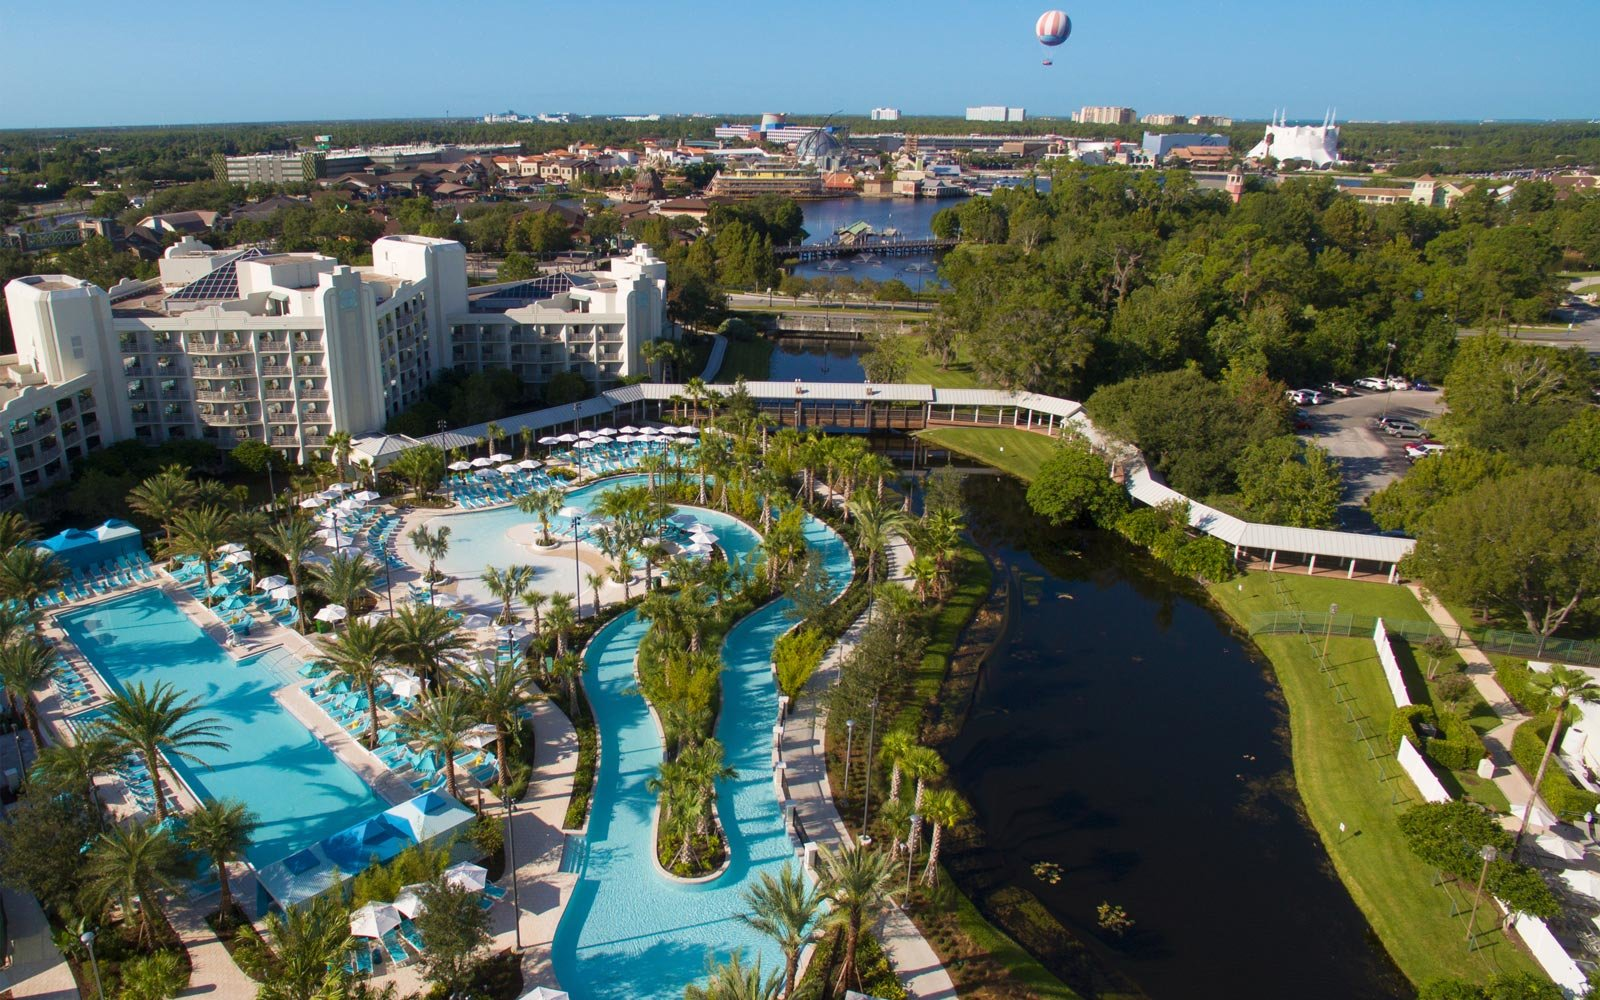 Here's How Teachers Can Get a Great Deal on a Disney World Hotel This Summer